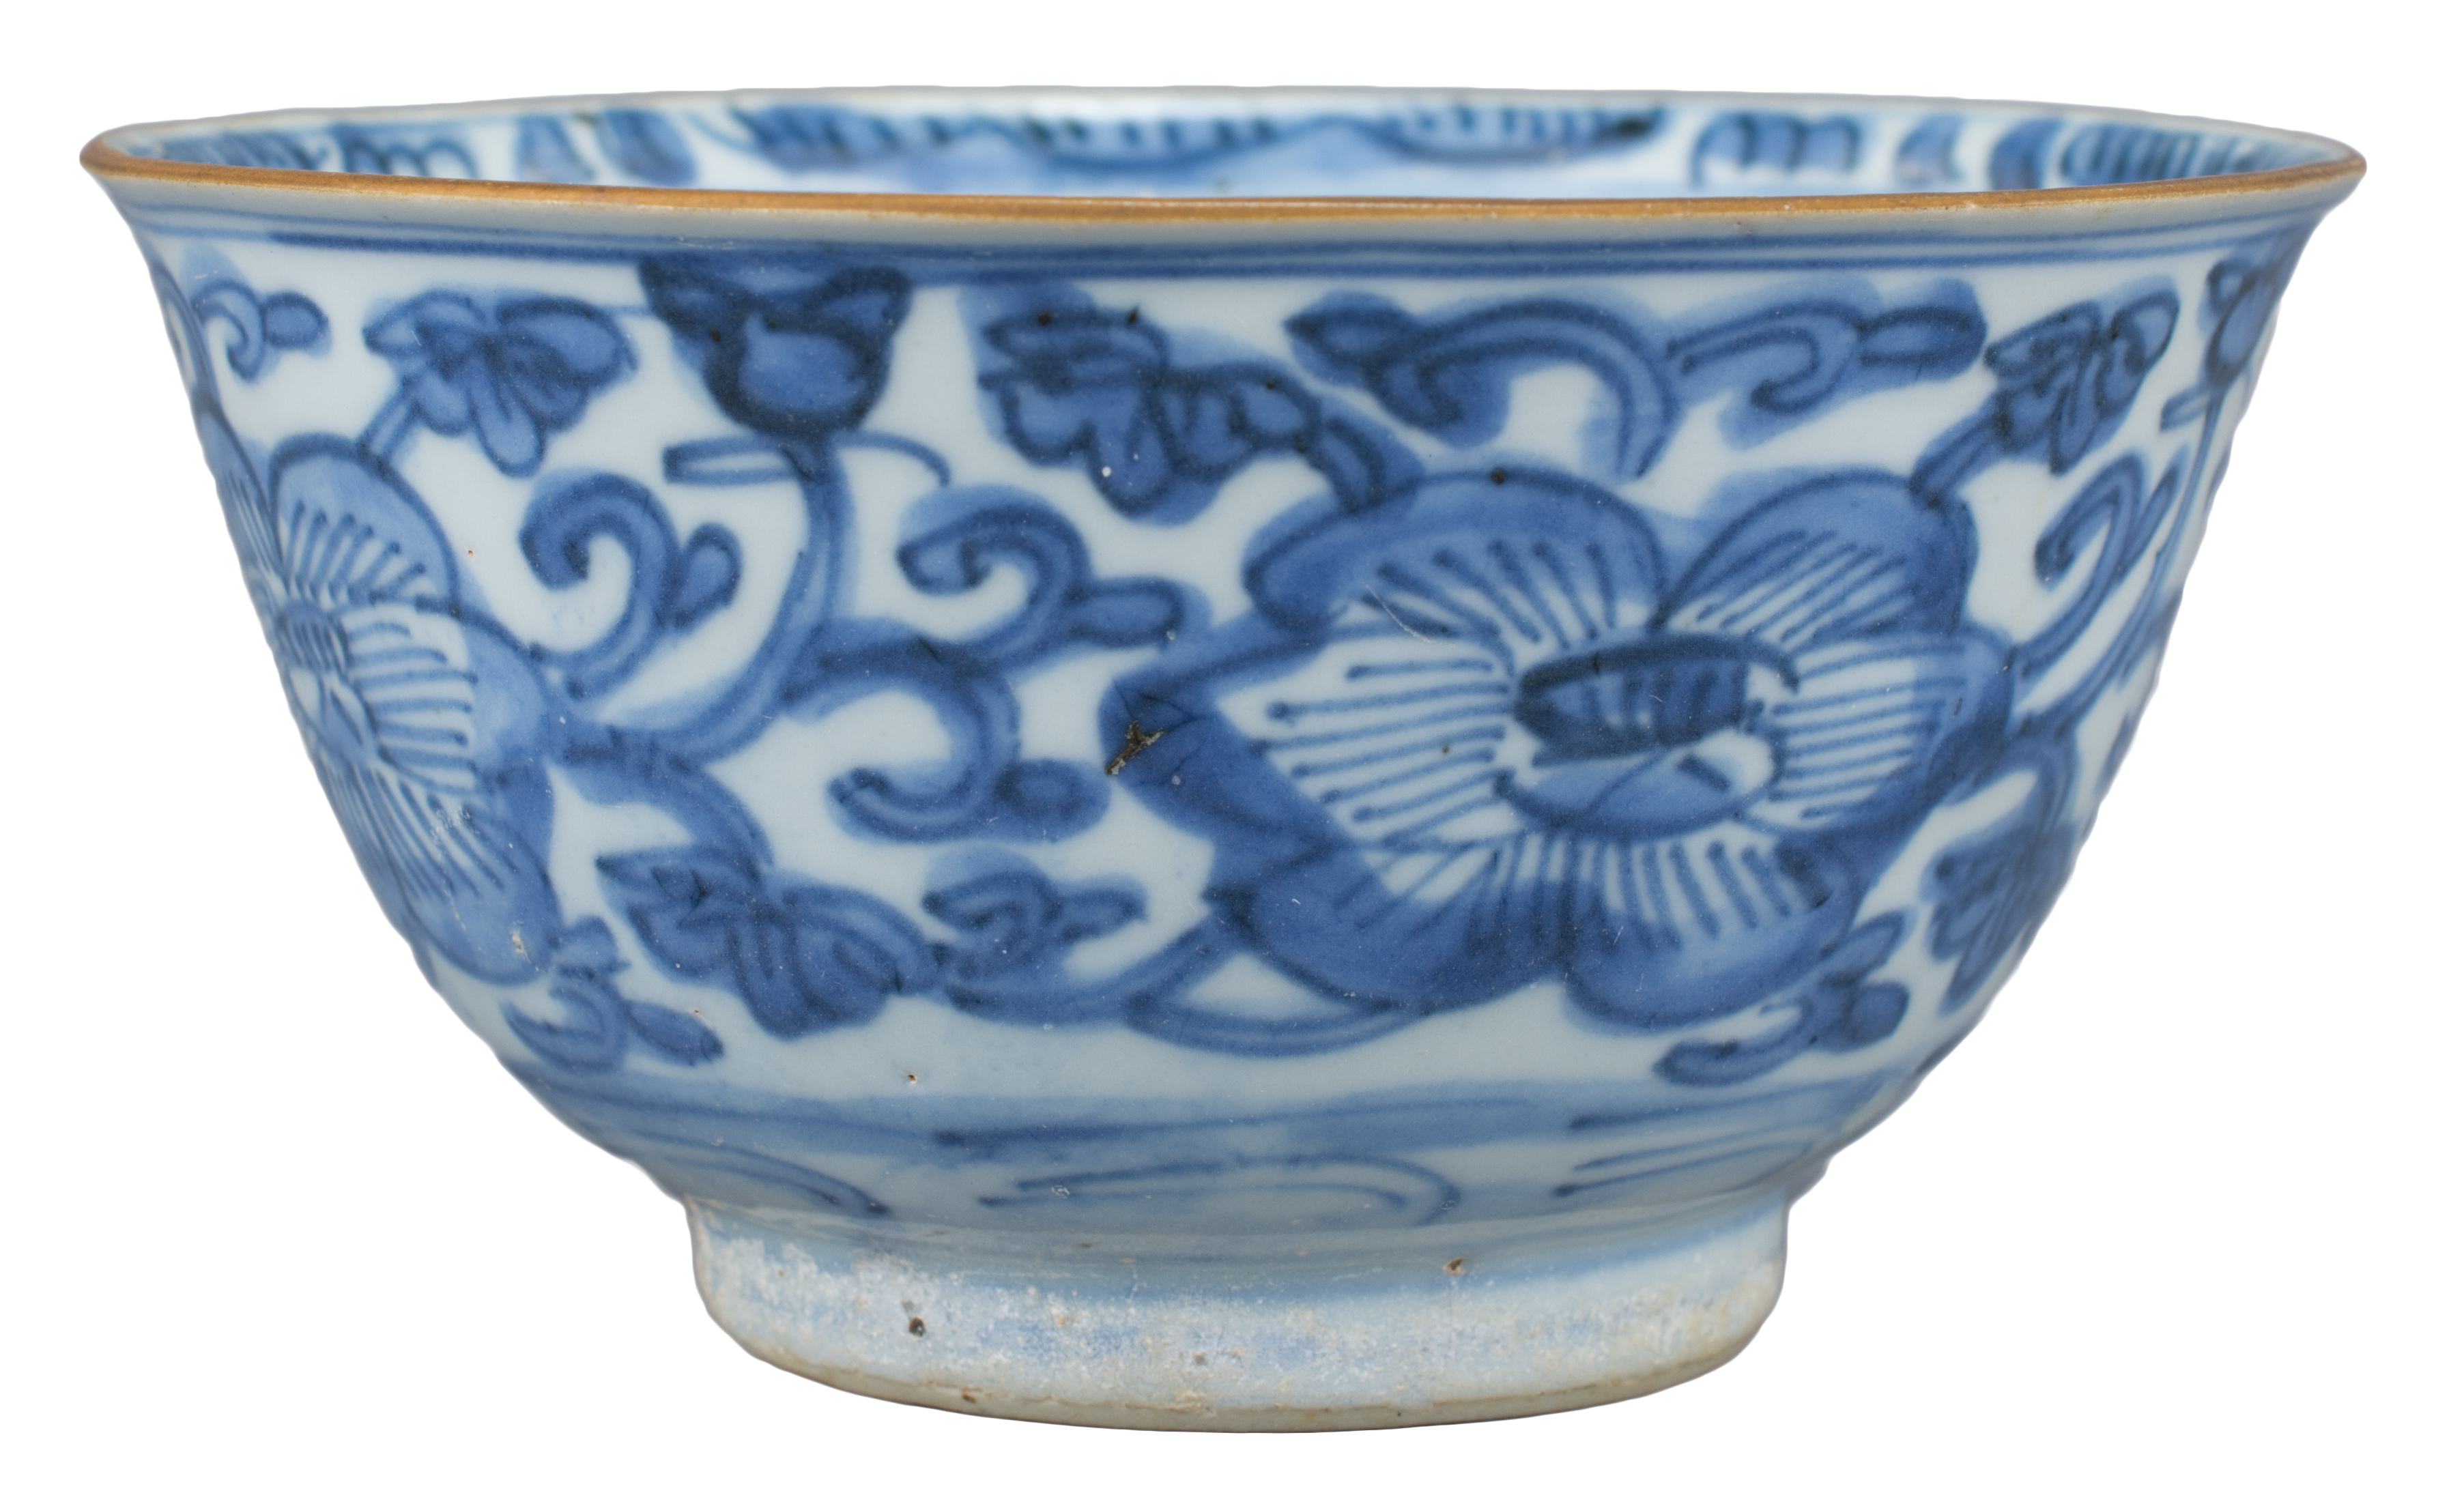 Lot 3 - A Good Chinese Transitional Blue & White Porcelain Bowl (17th Century)